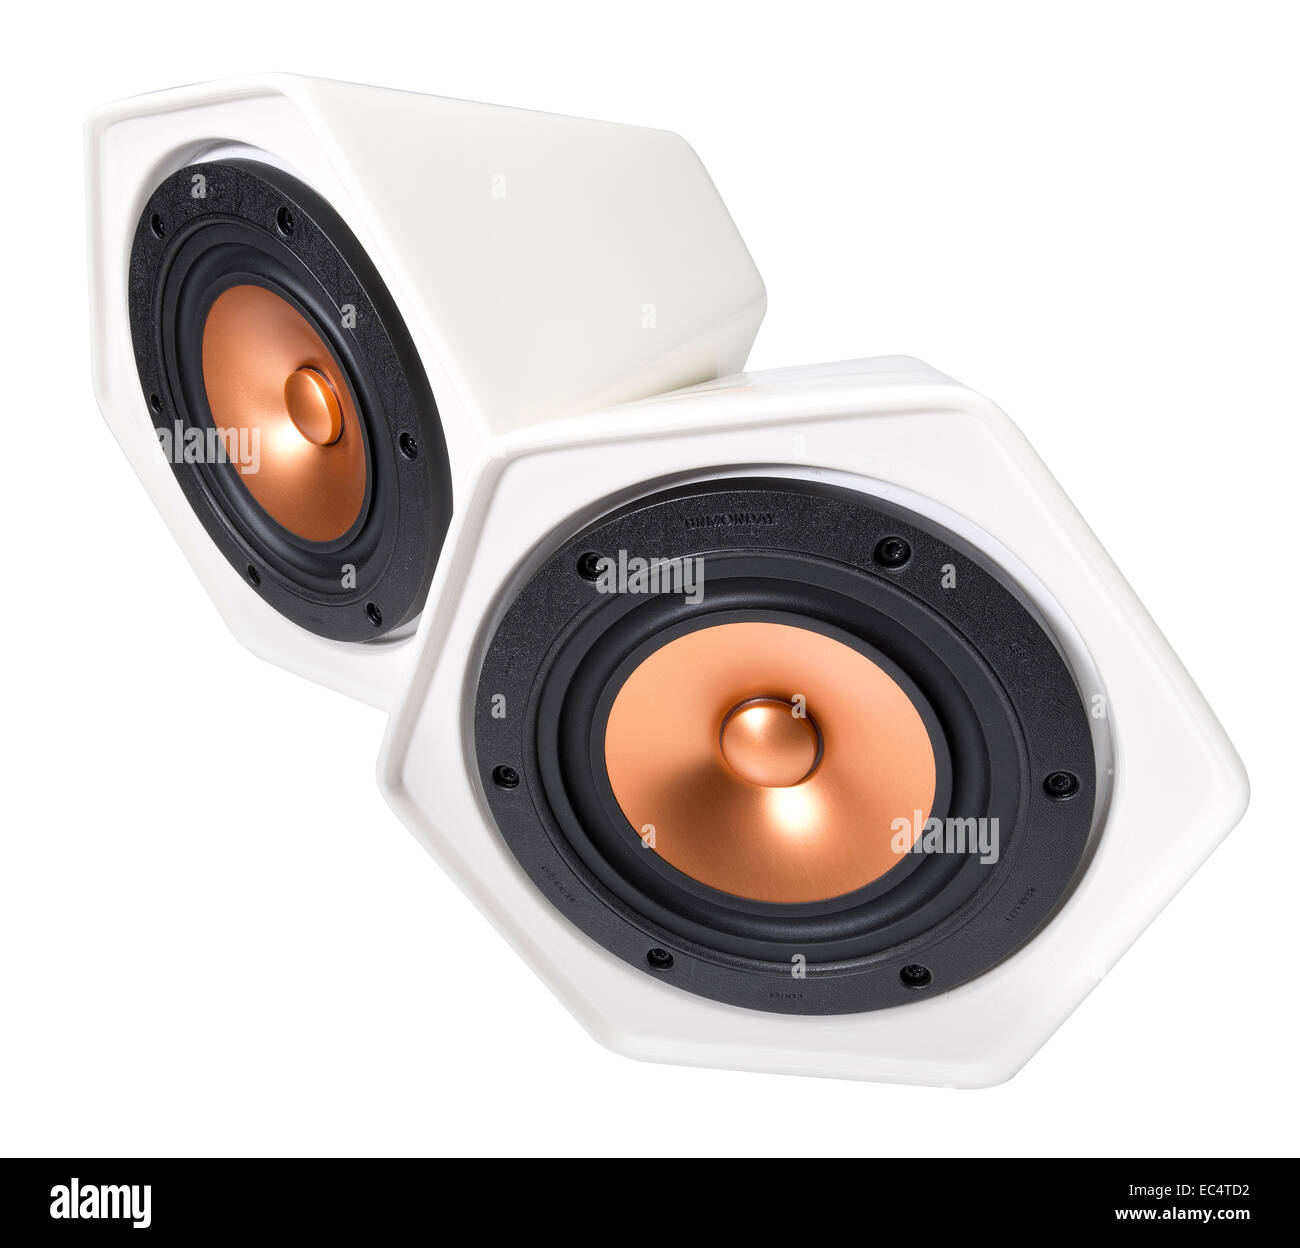 speakers apple. stock photo - unmonday wireless portable speakers. apple airplay compatible. streams audio to vitro porcelain ceramic speaker speakers